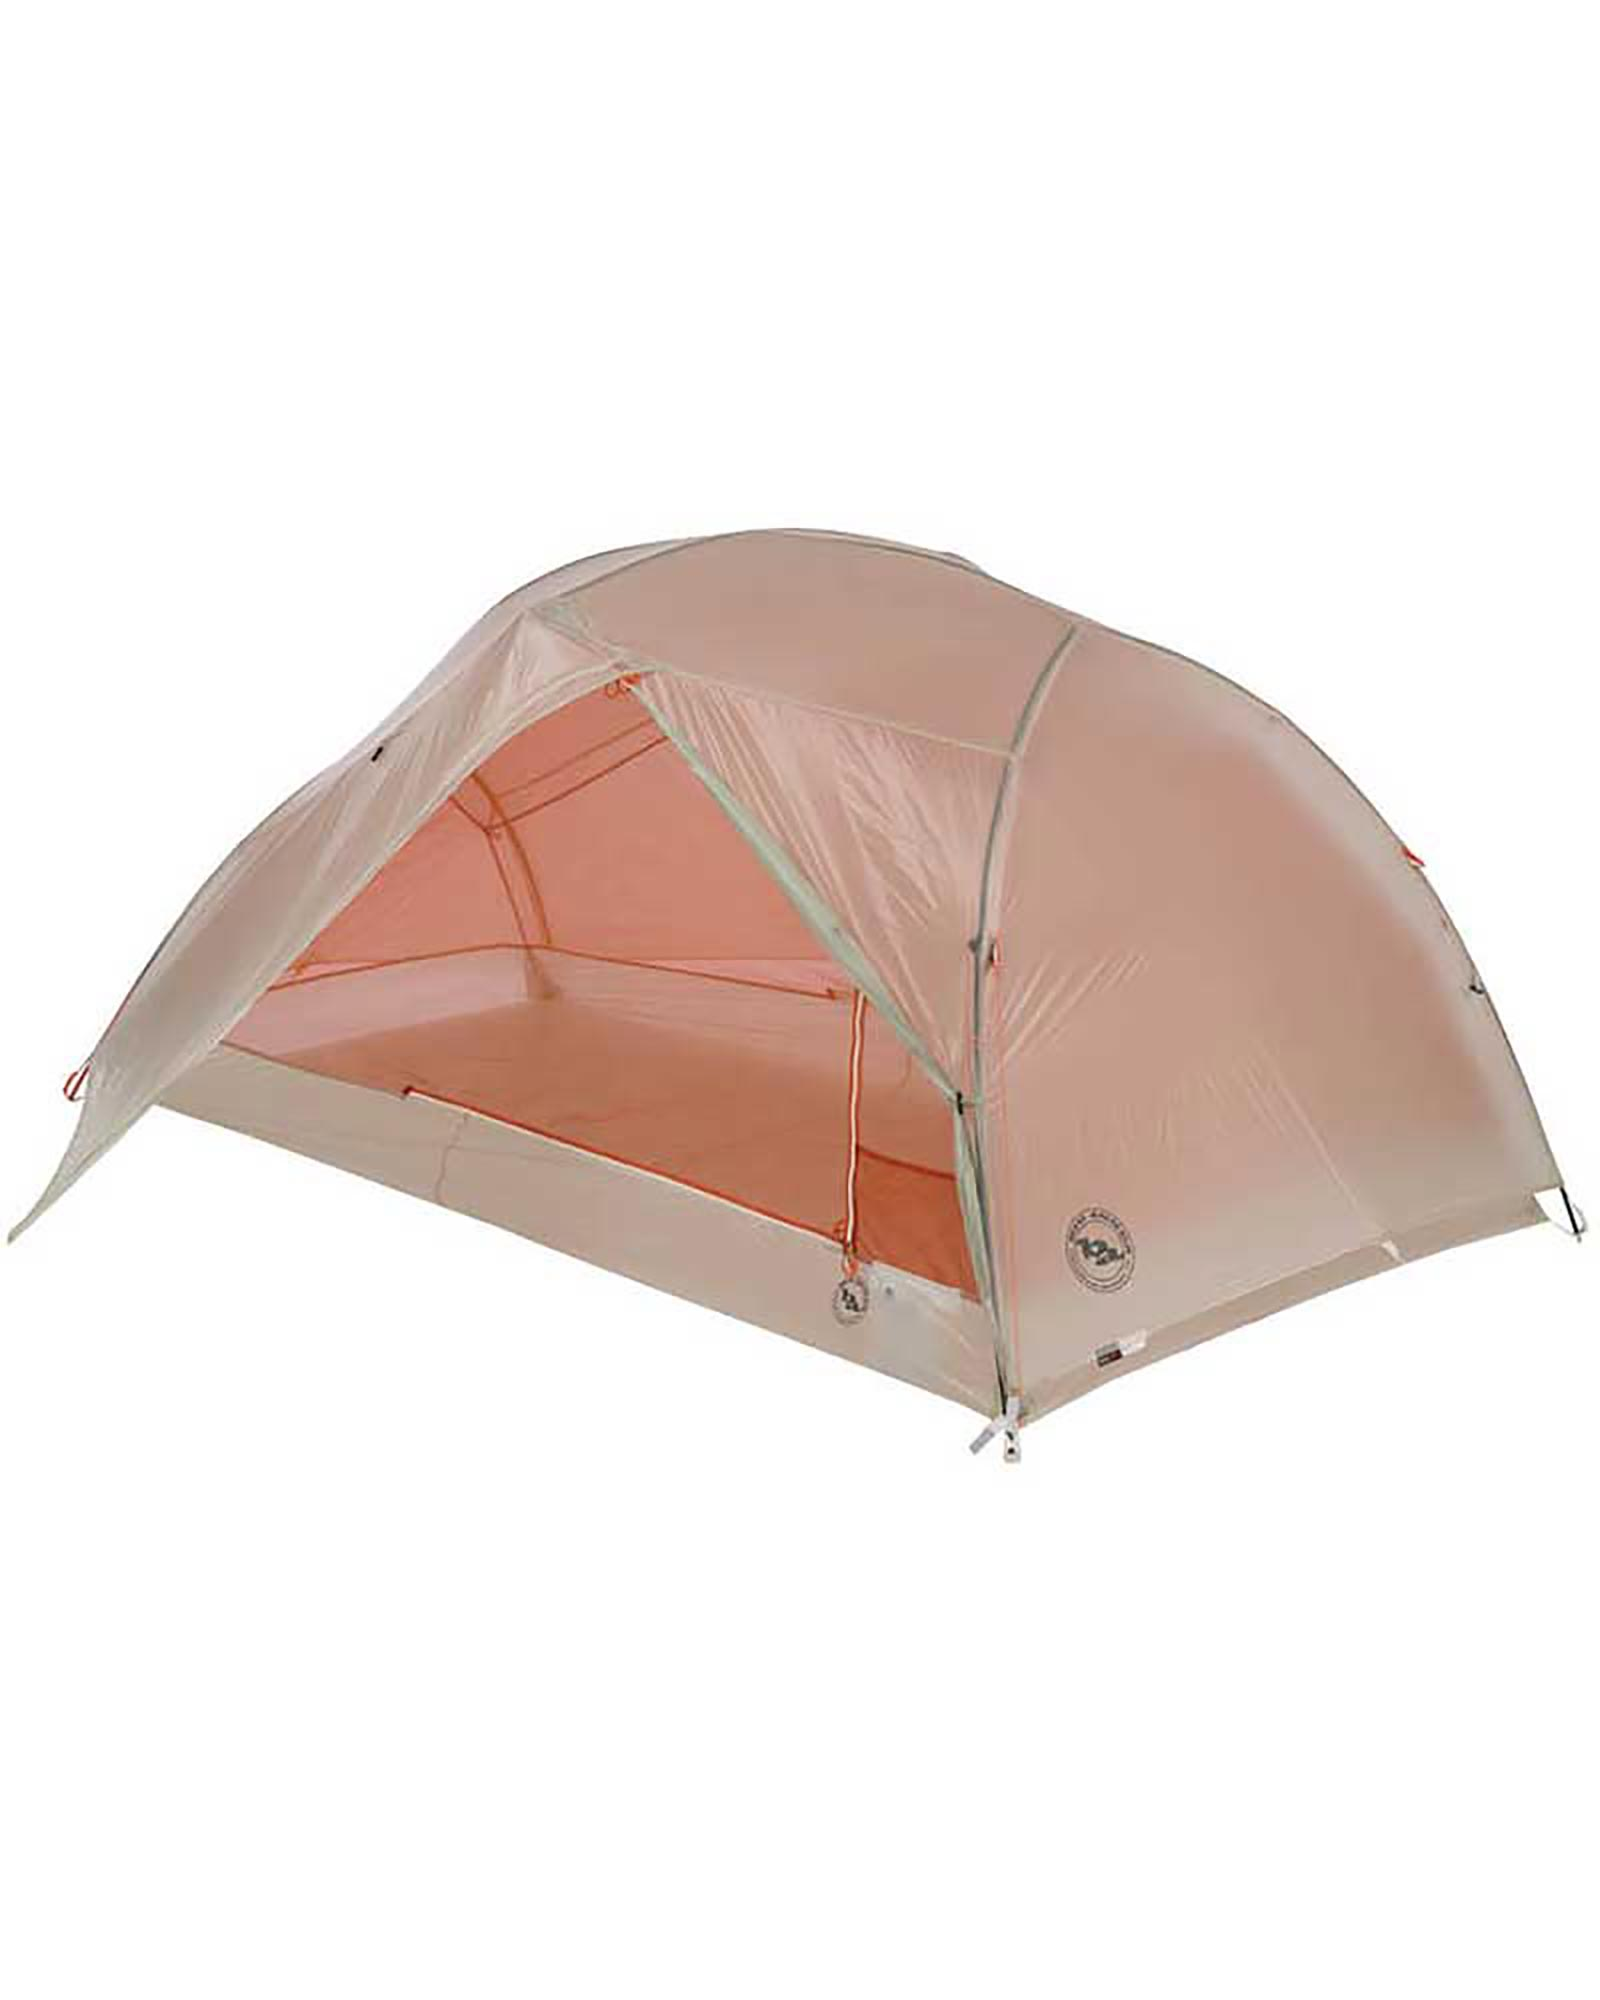 Big Agnes Copper Spur 2 Platinum Tent 0